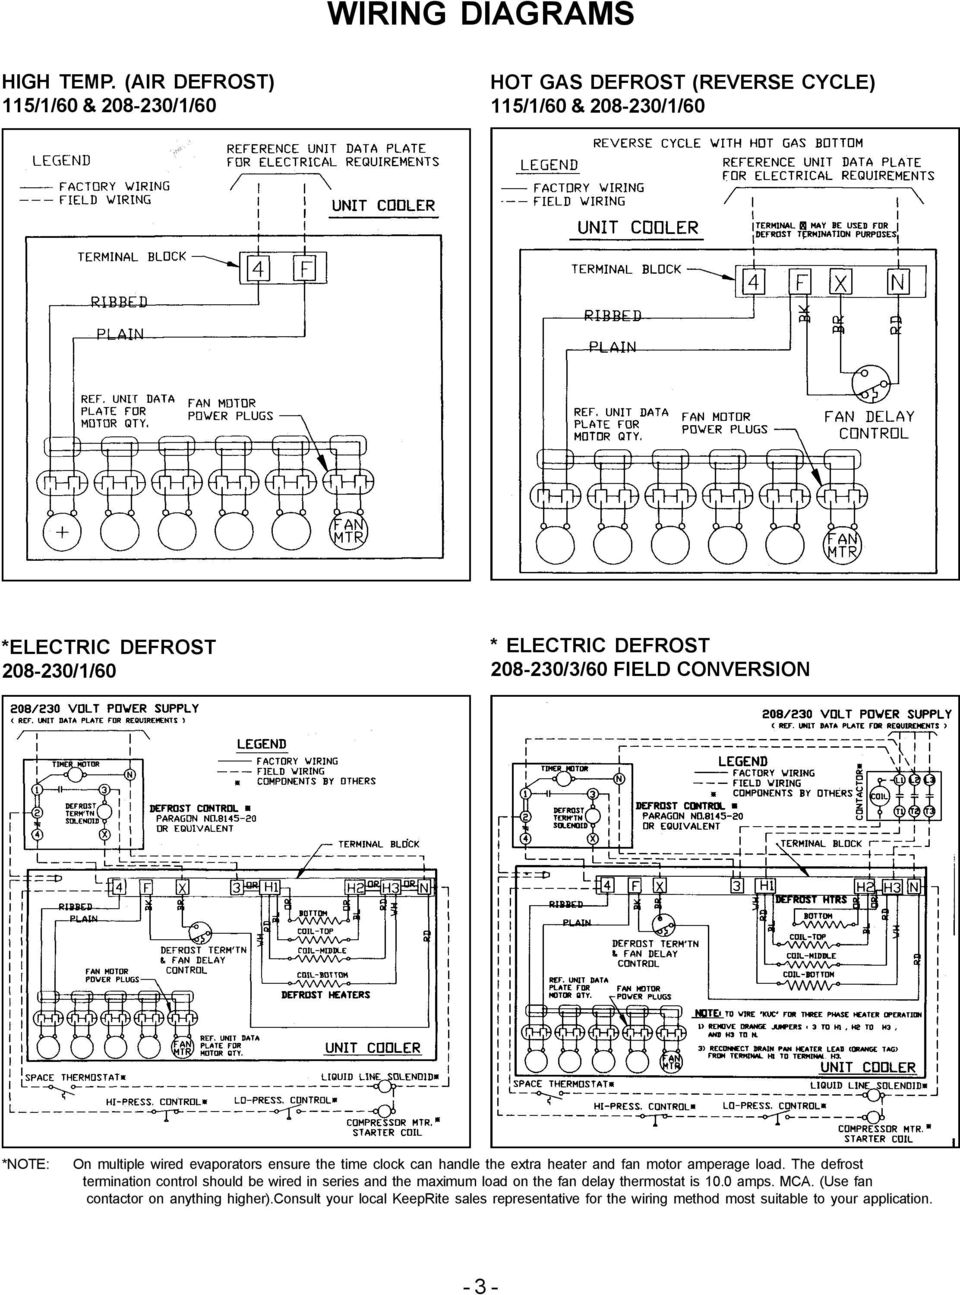 Aaon Wiring Schematics Free Download Roof Top Ac And 04 Chevy Silverado Engine Diagram Capacitor Motor Diagrams At